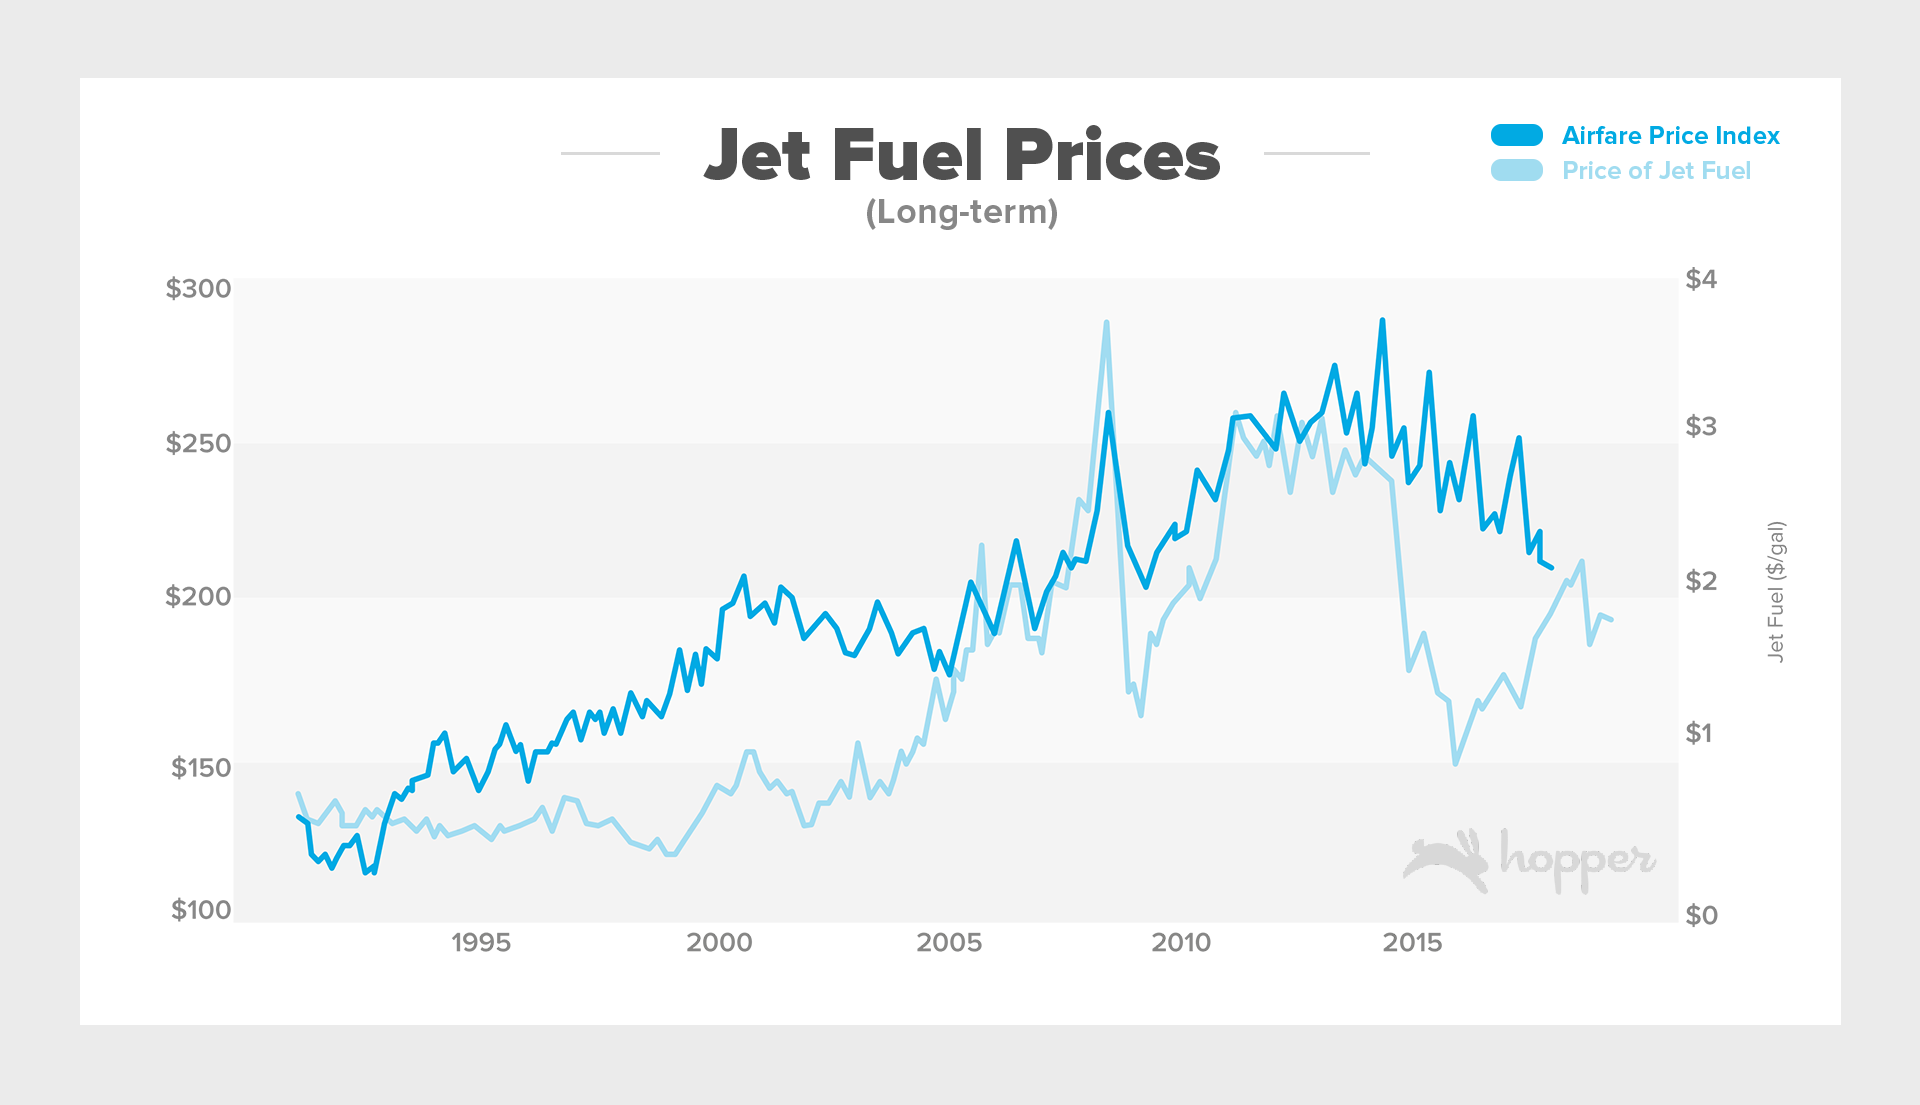 Jet Fuel Prices April (Long-Term)